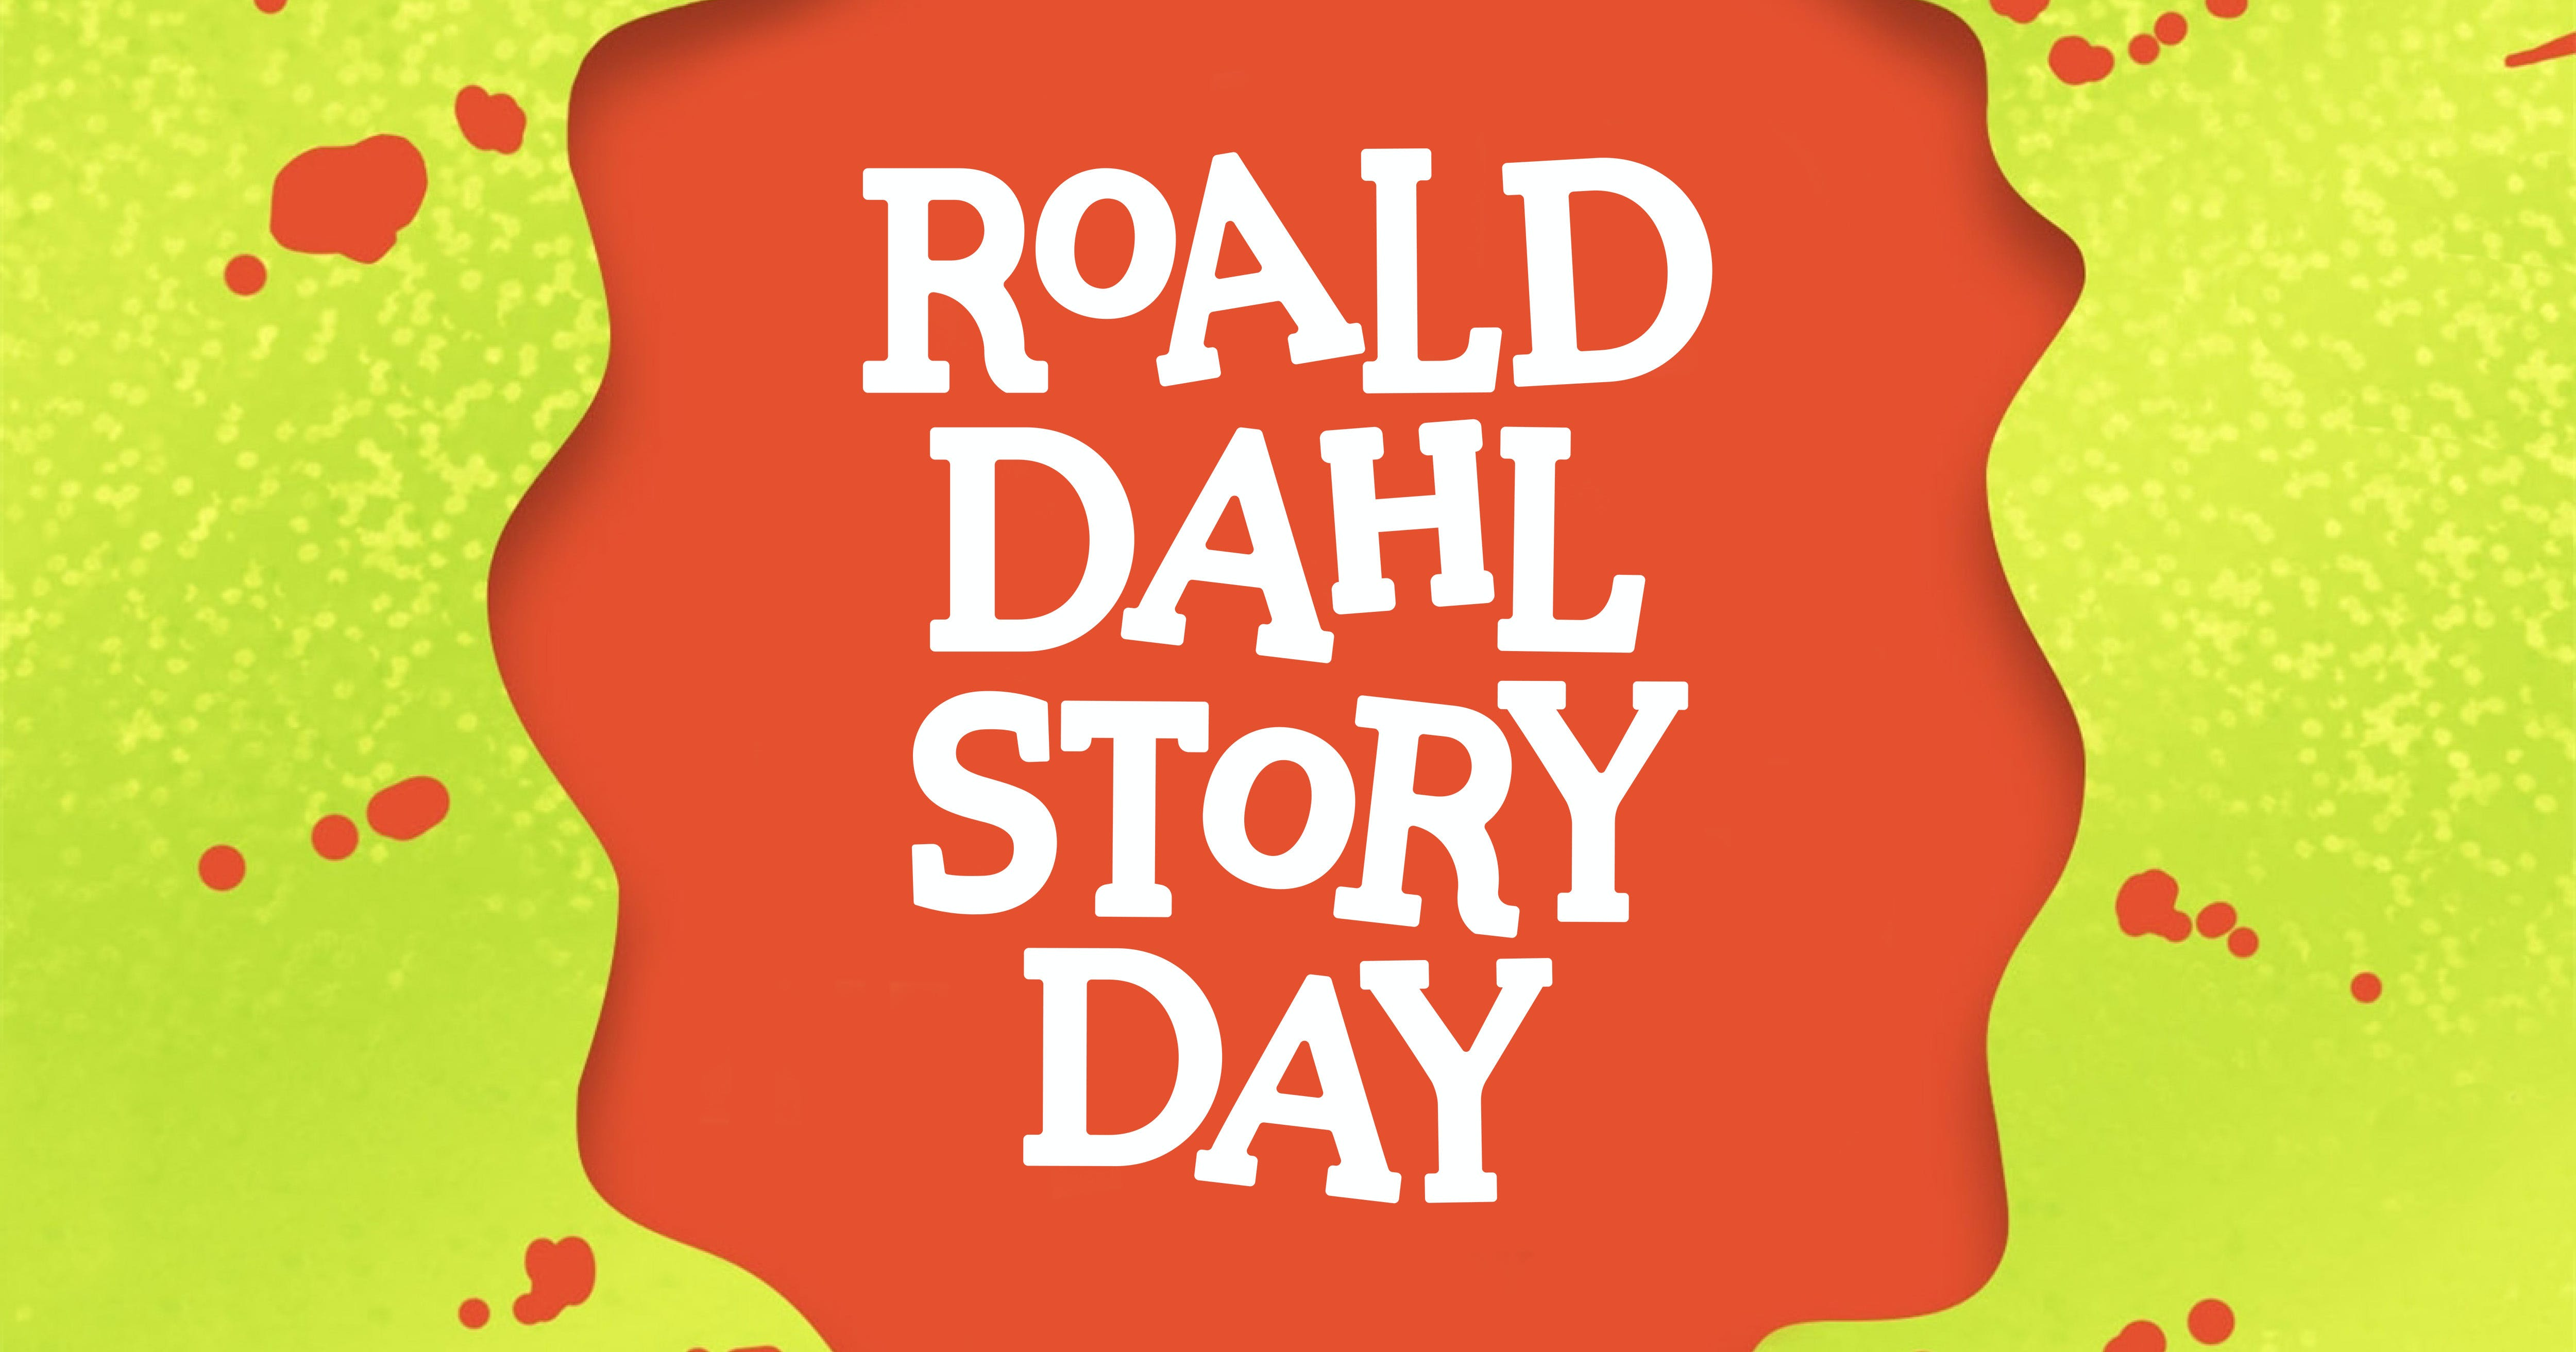 Roald Dahl Story Day 2021 party pack